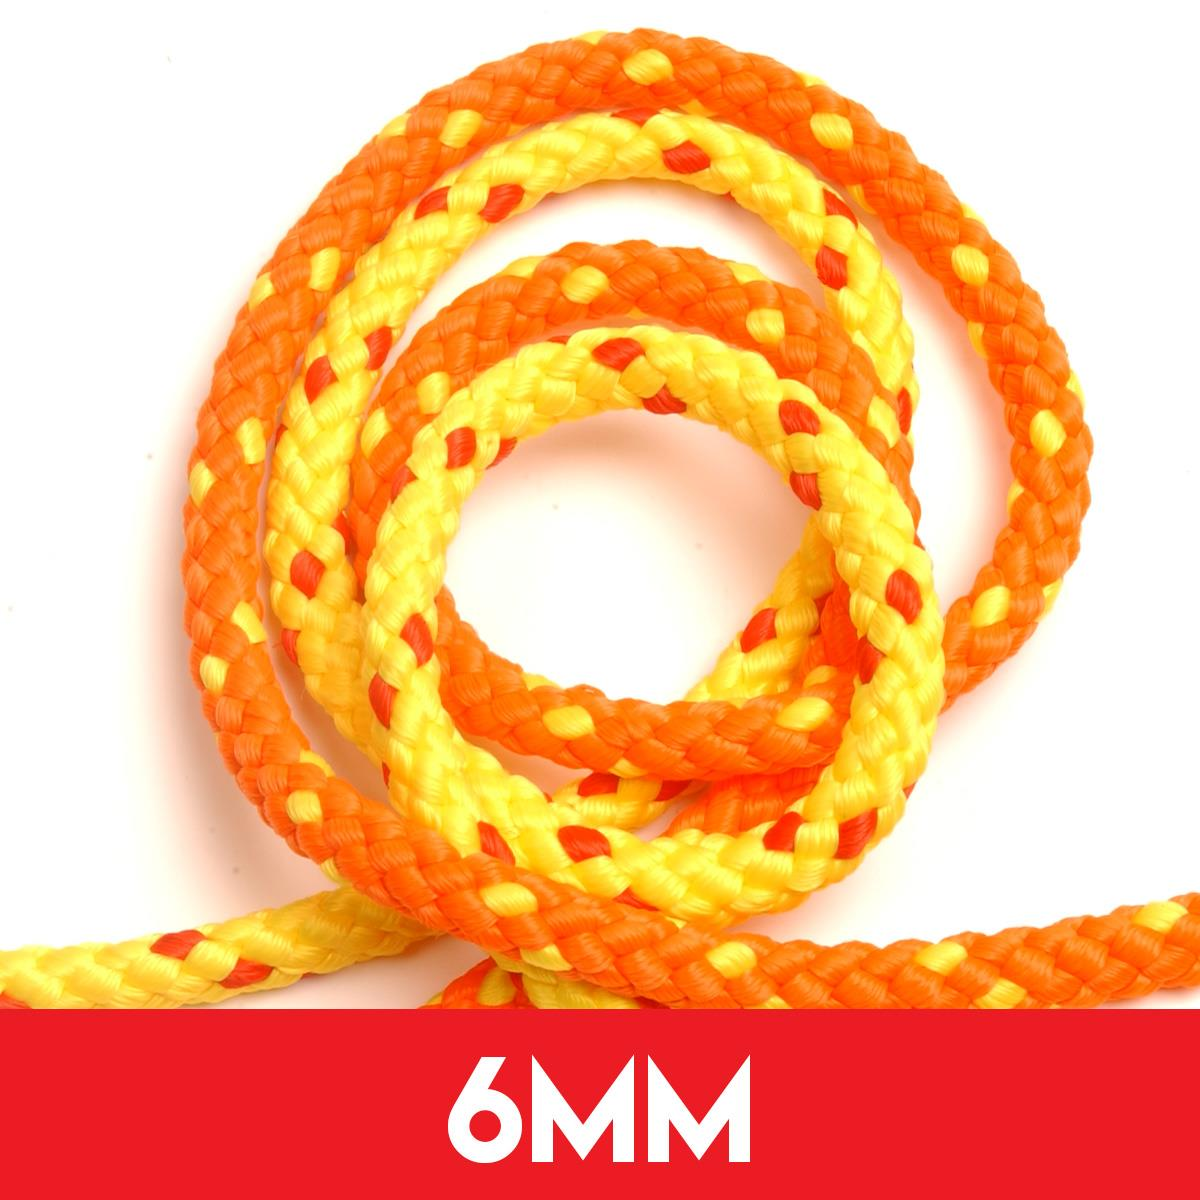 6mm Floatline Tow Rope